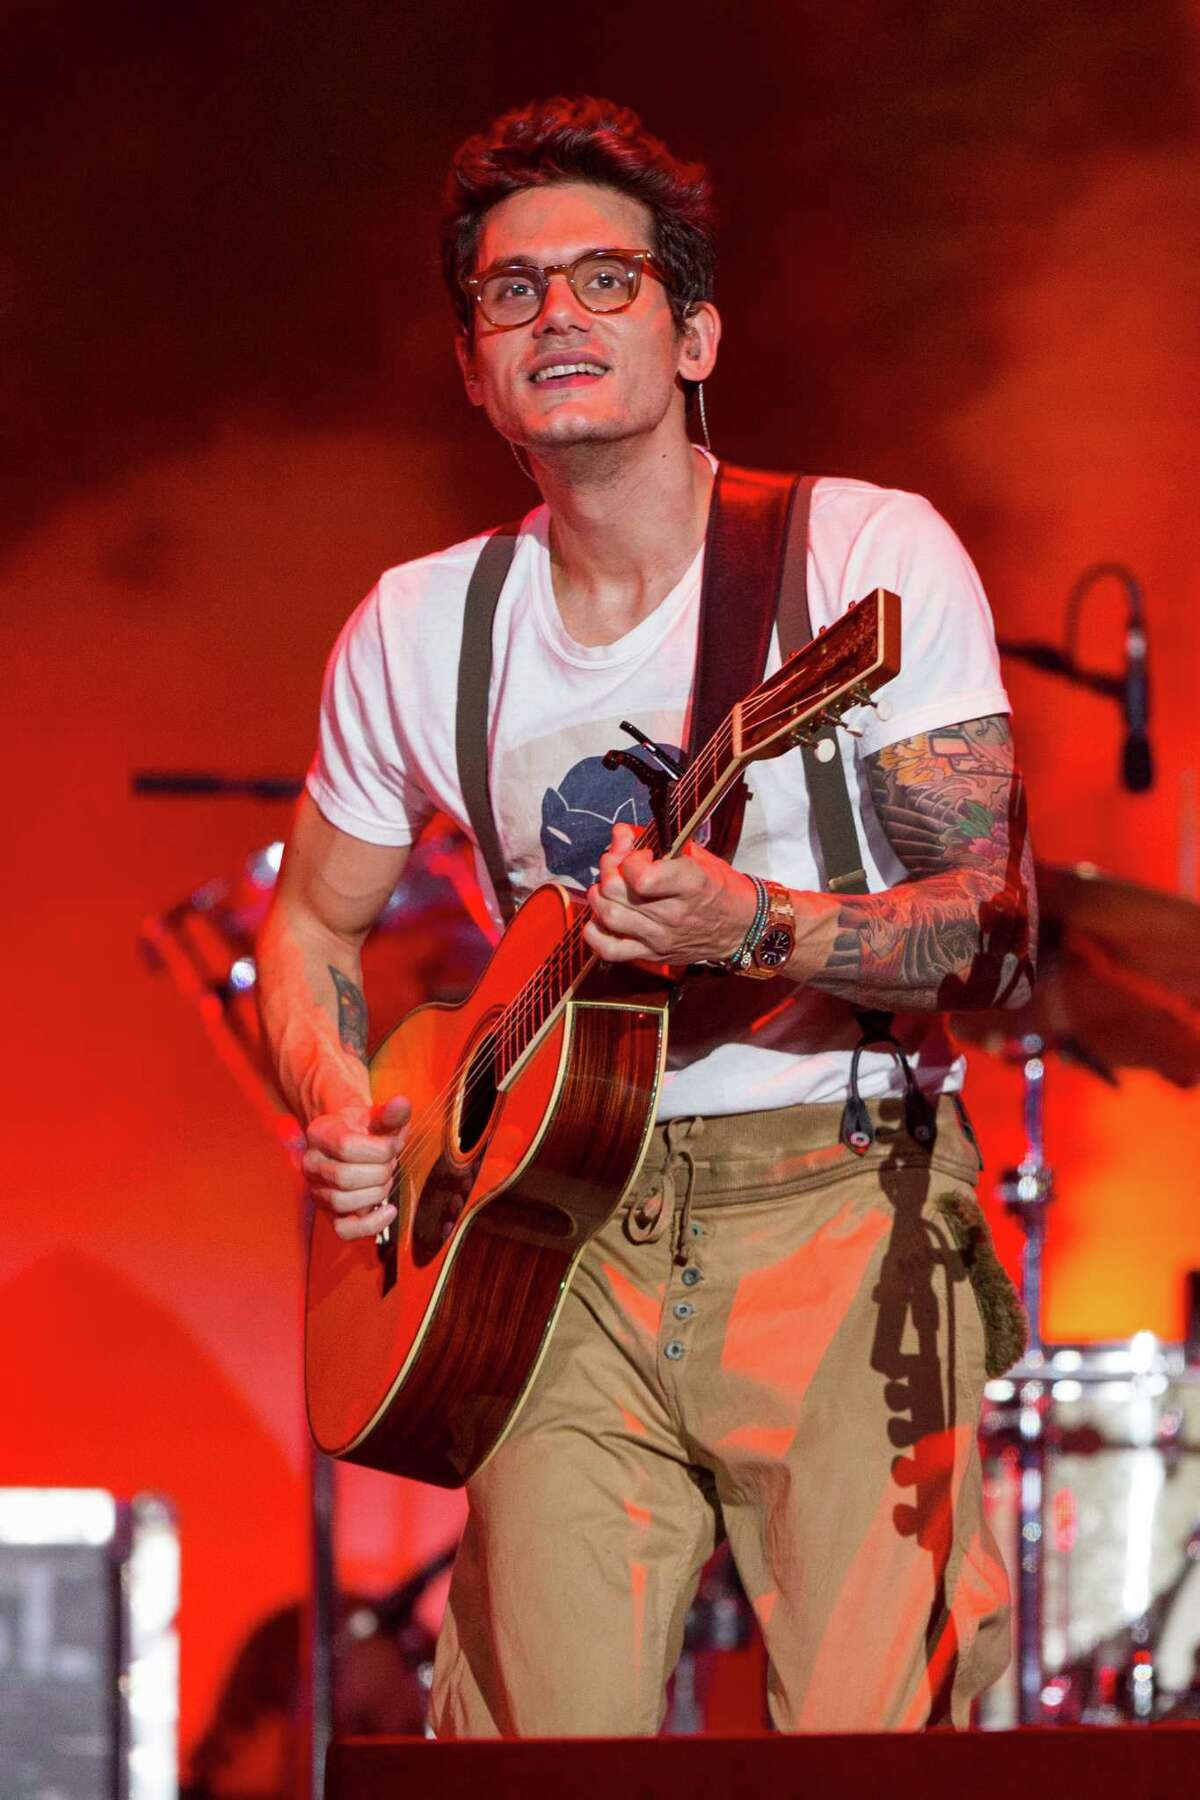 John Mayer performs on stage during the Made In America Festival at Grand Park on Sunday, Aug. 31, 2014, in Los Angeles. (Photo by Paul A. Hebert/Invision/AP)